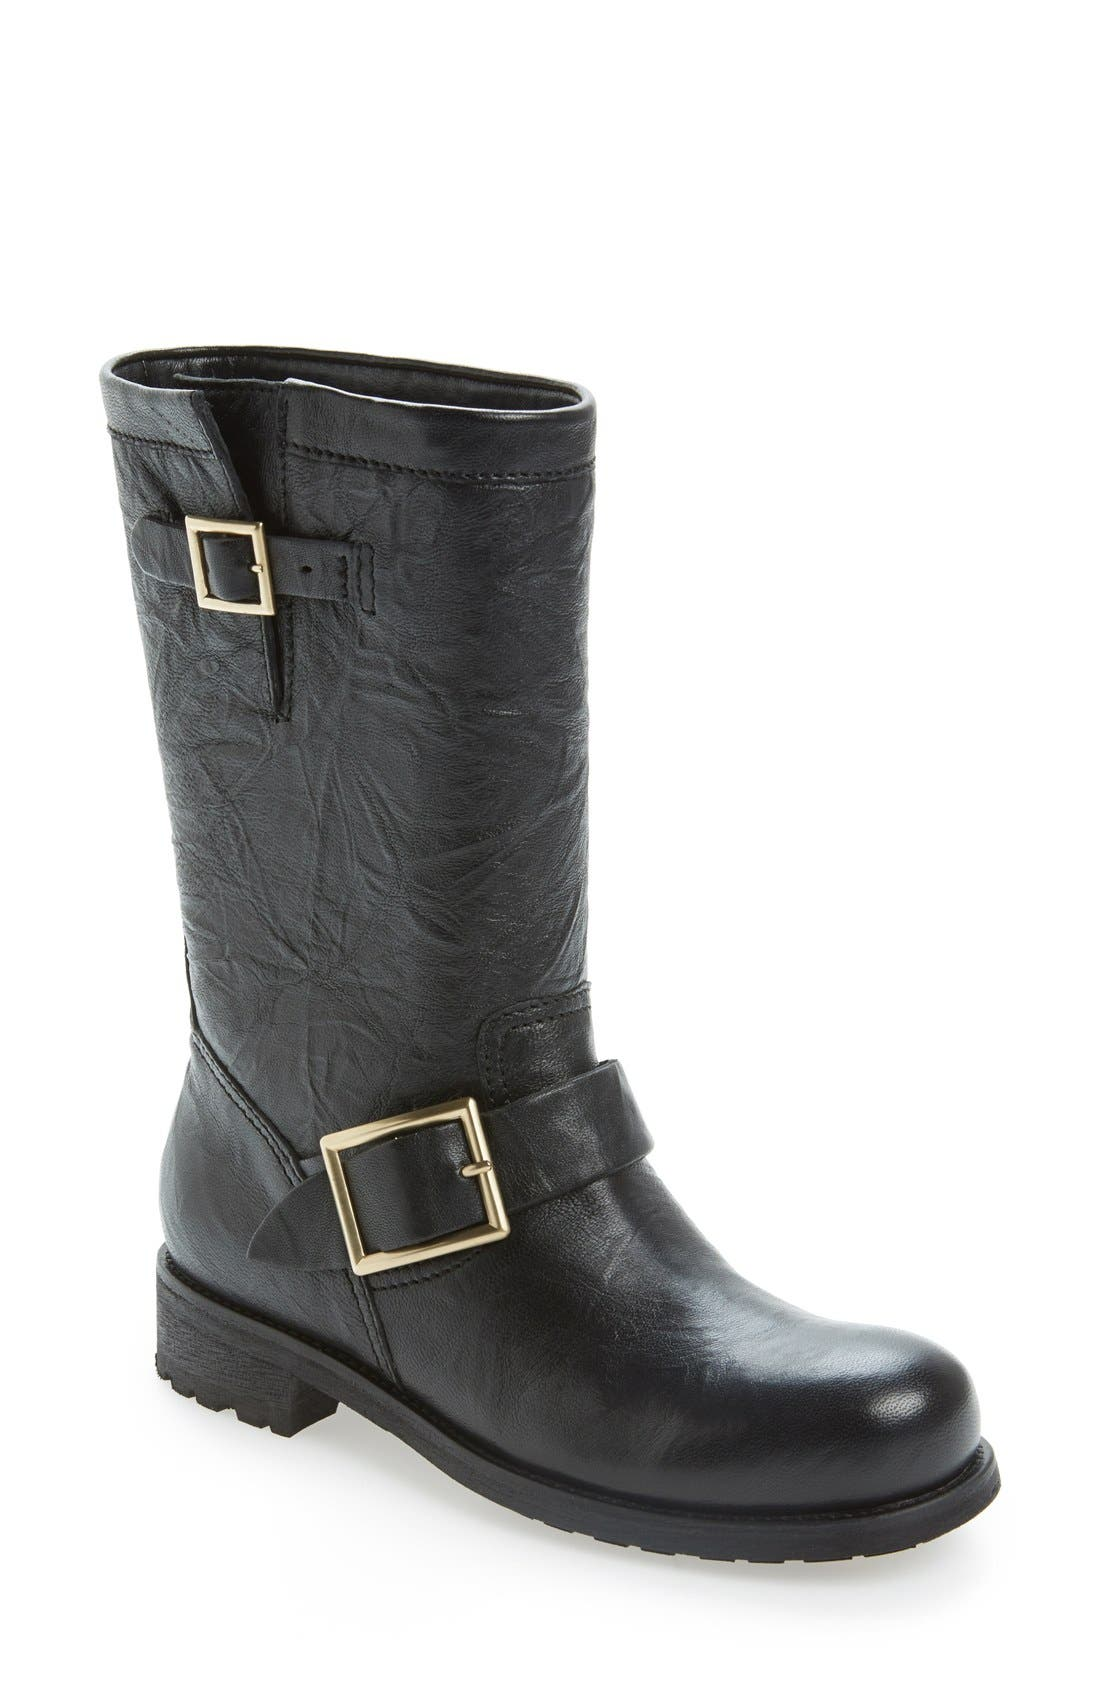 Alternate Image 1 Selected - Jimmy Choo Motorcycle Boot